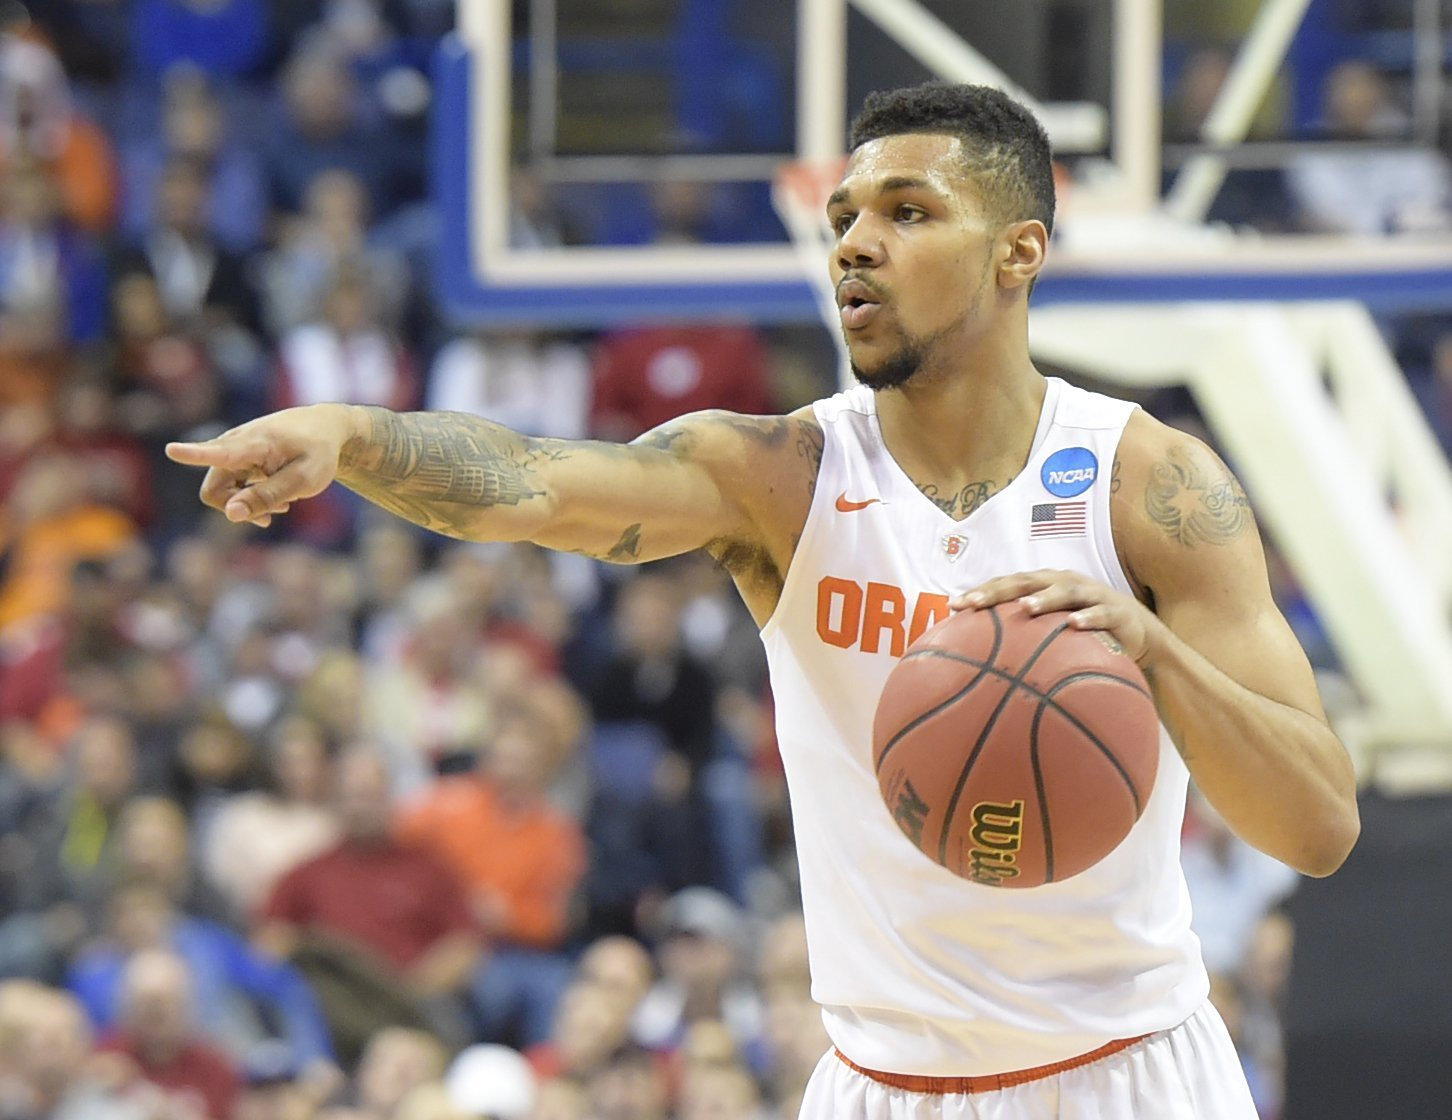 NBA Draft: Detroit Pistons Select Michael Gbinije With 49th Pick